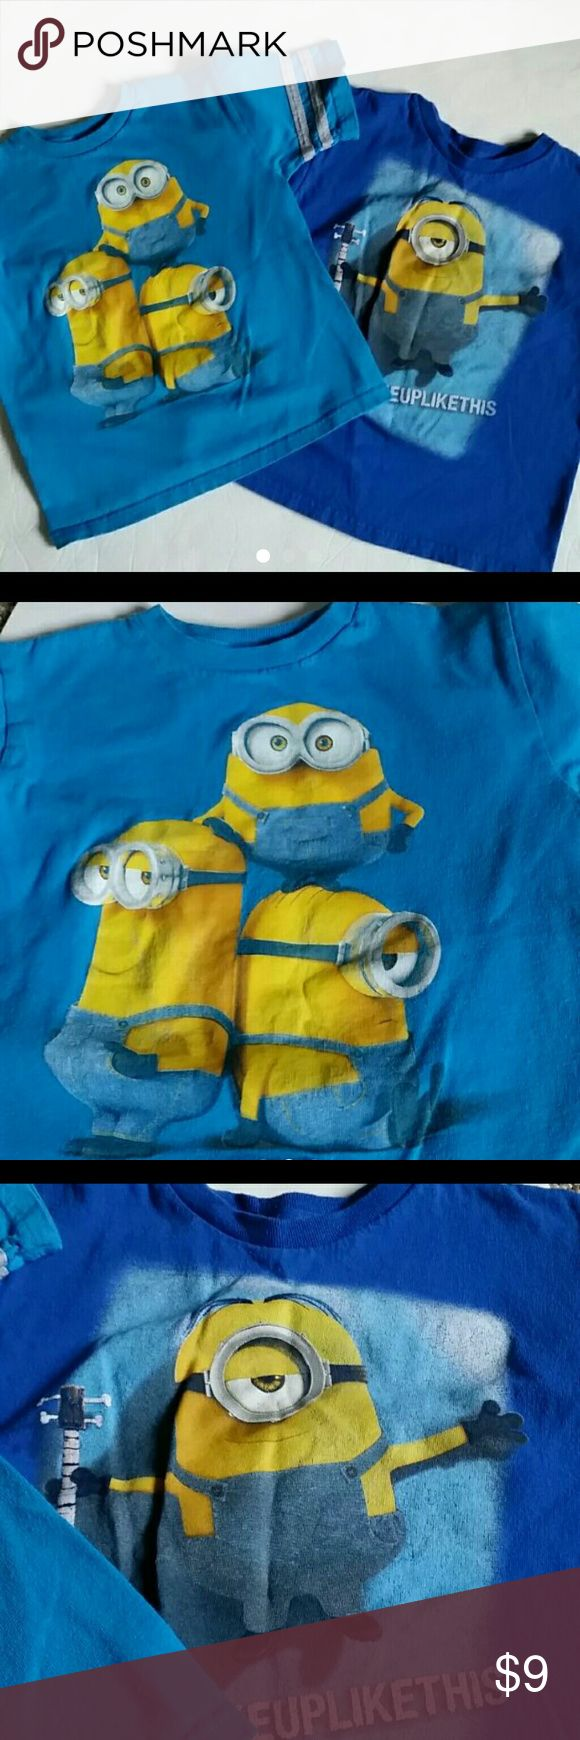 2 minions shirts size 5/6 Very good condition, no tears or obvious spots  SIZE 5/6 I do have bundle discount, other than that all prices are firm! minions  Shirts & Tops Tees - Short Sleeve